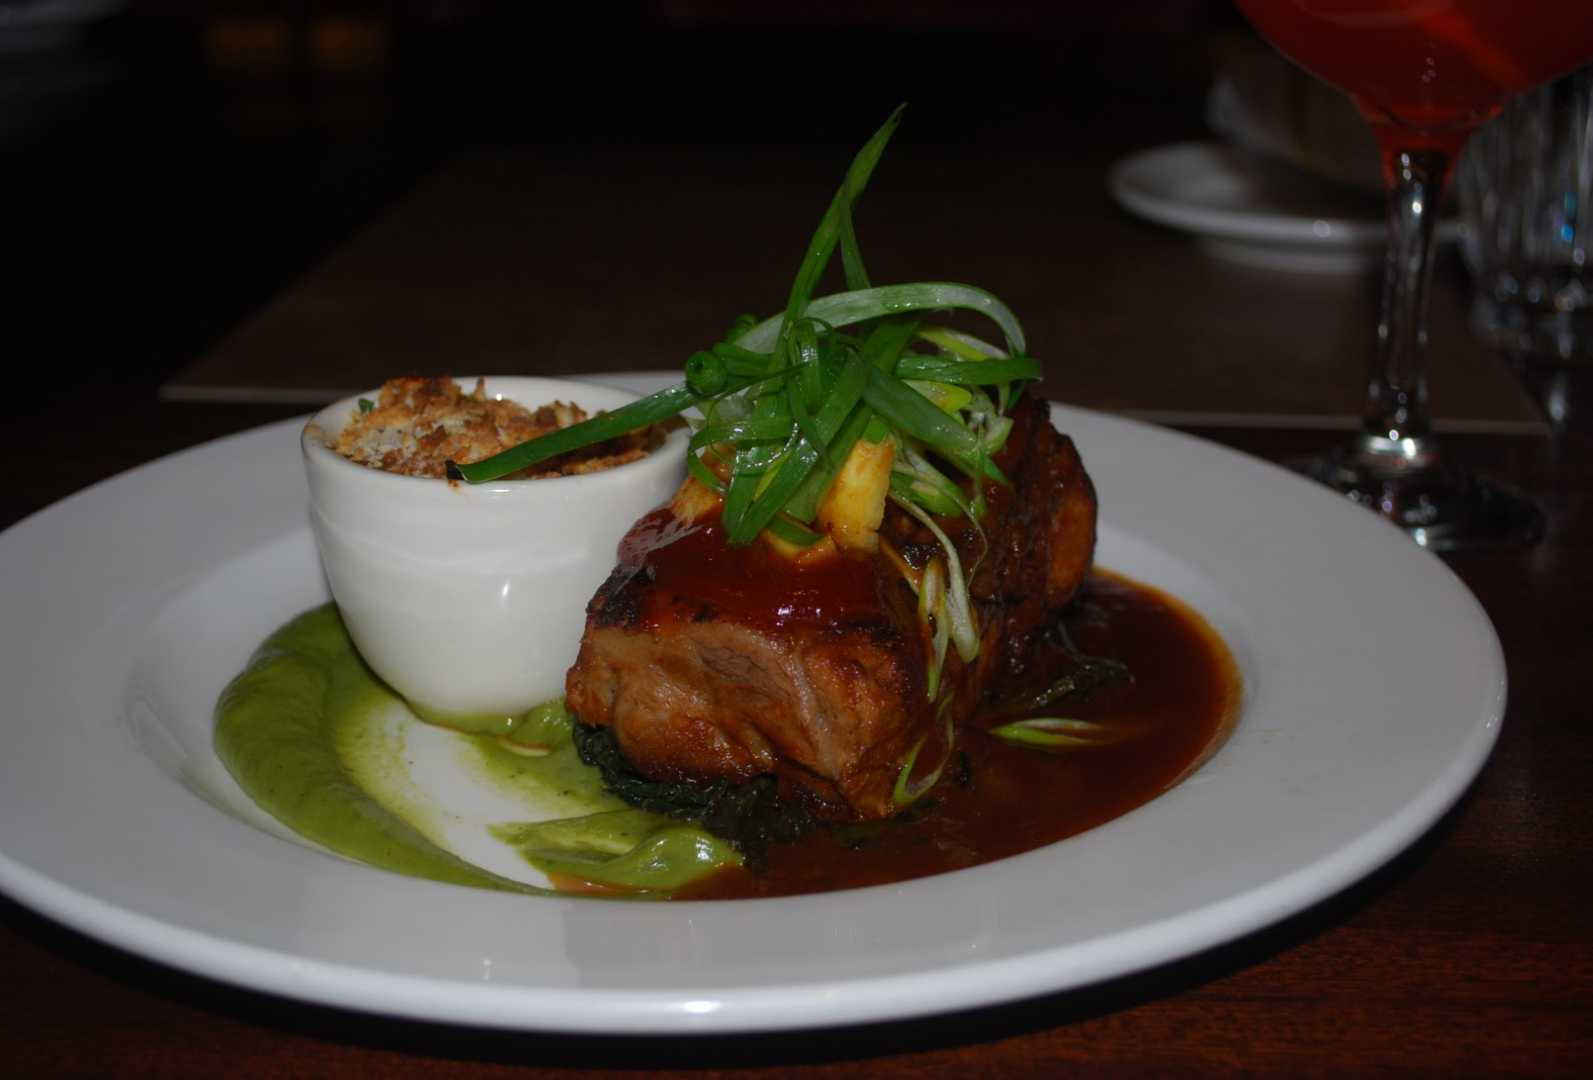 BBQ Pork Short Ribs  - Baked Beans, Smoked Bacon, Braised Greens, Garlicky Scallion Jus